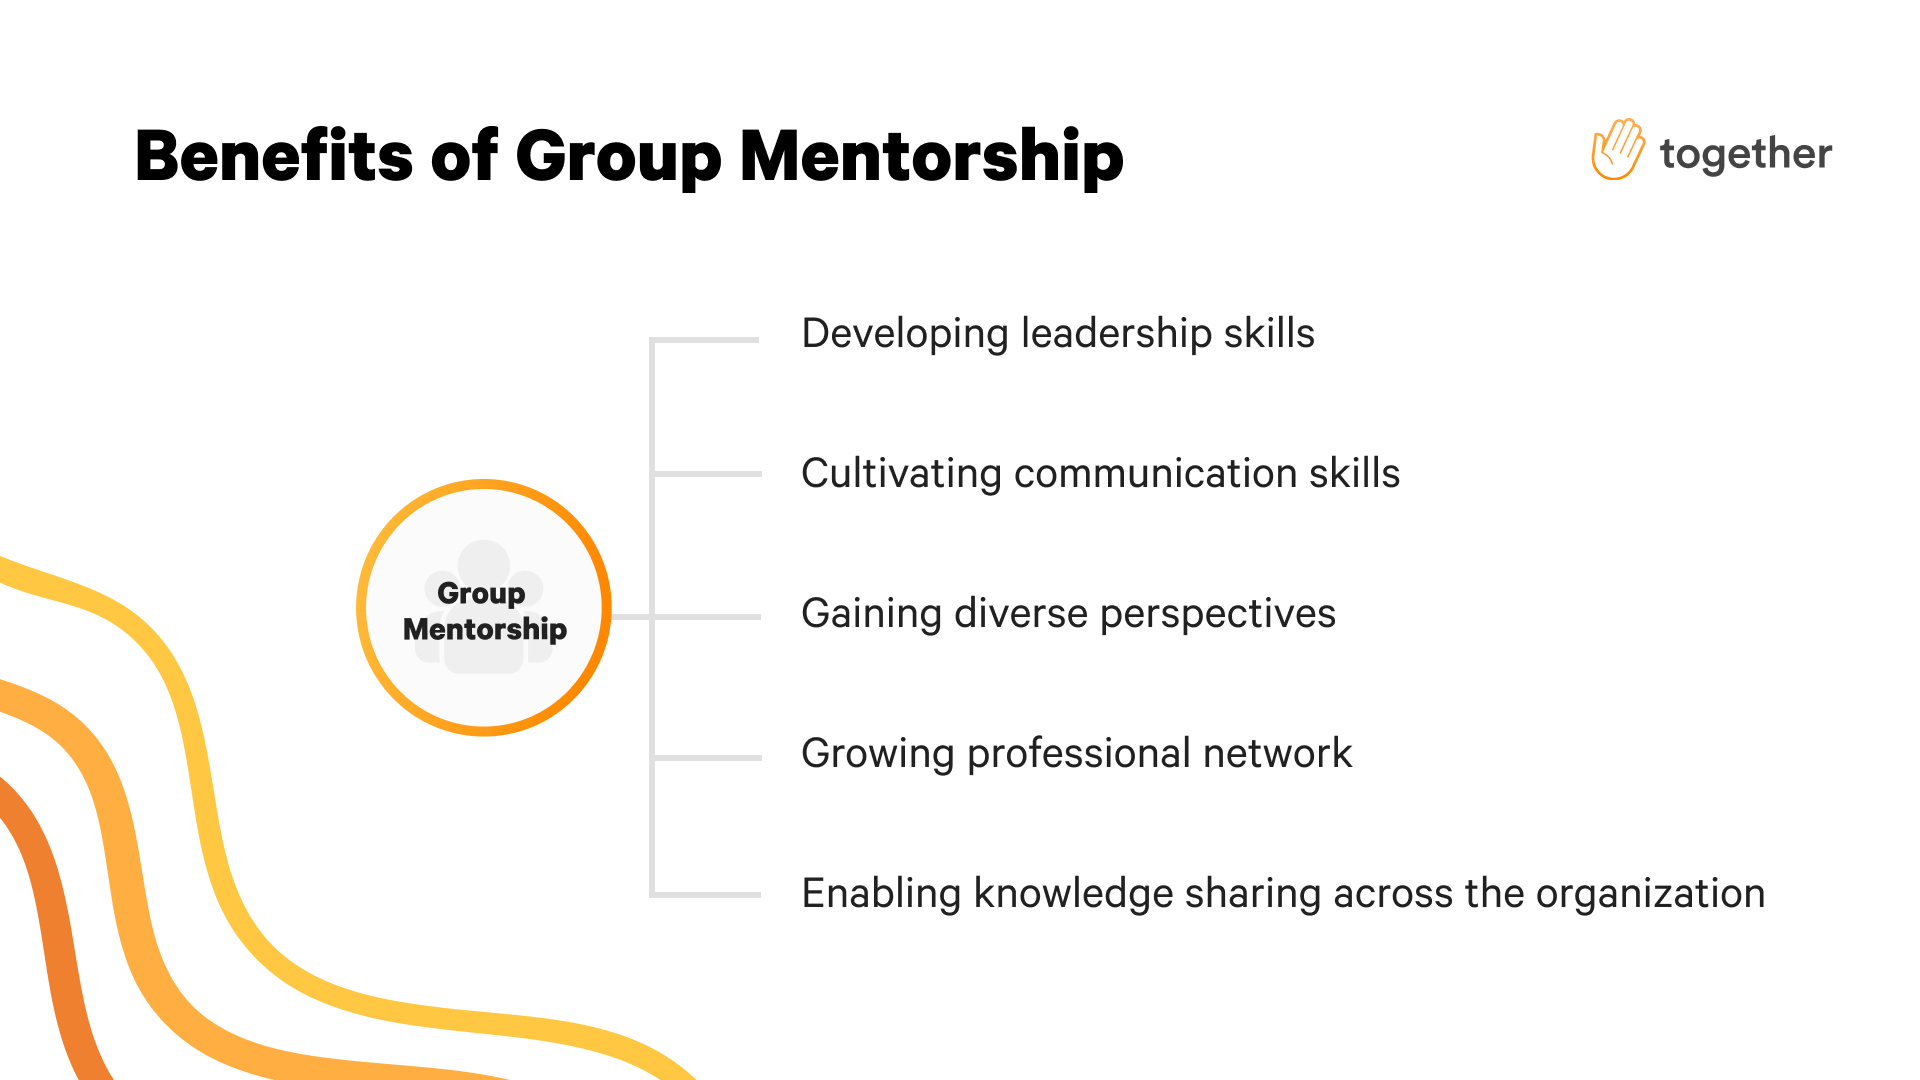 The benefits of group mentorship.